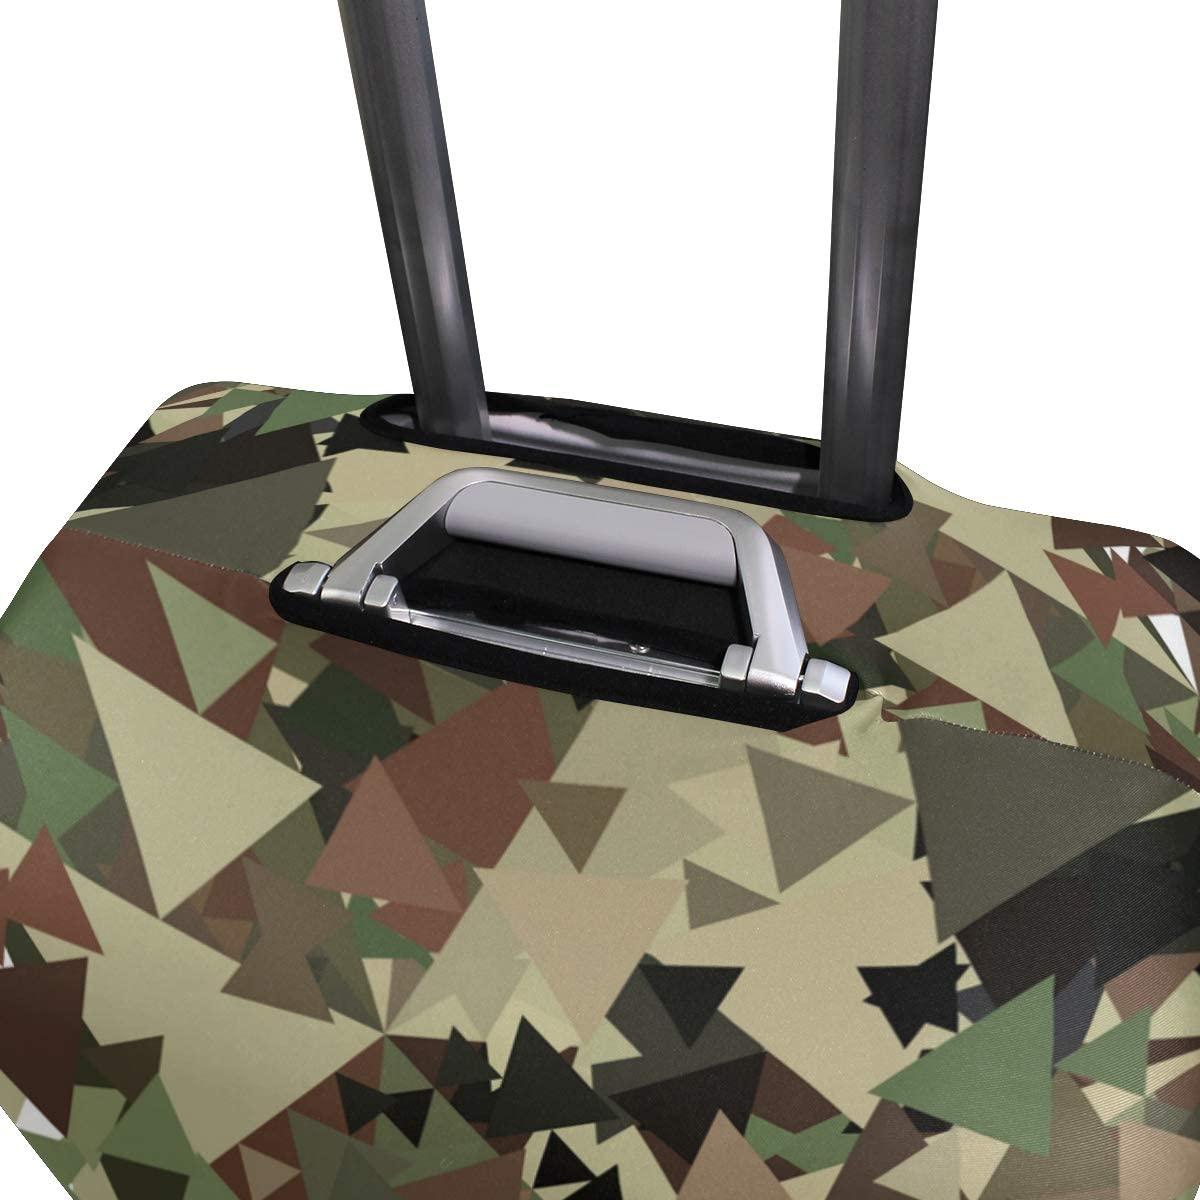 FOLPPLY Green Camo Triangle Luggage Cover Baggage Suitcase Travel Protector Fit for 18-32 Inch